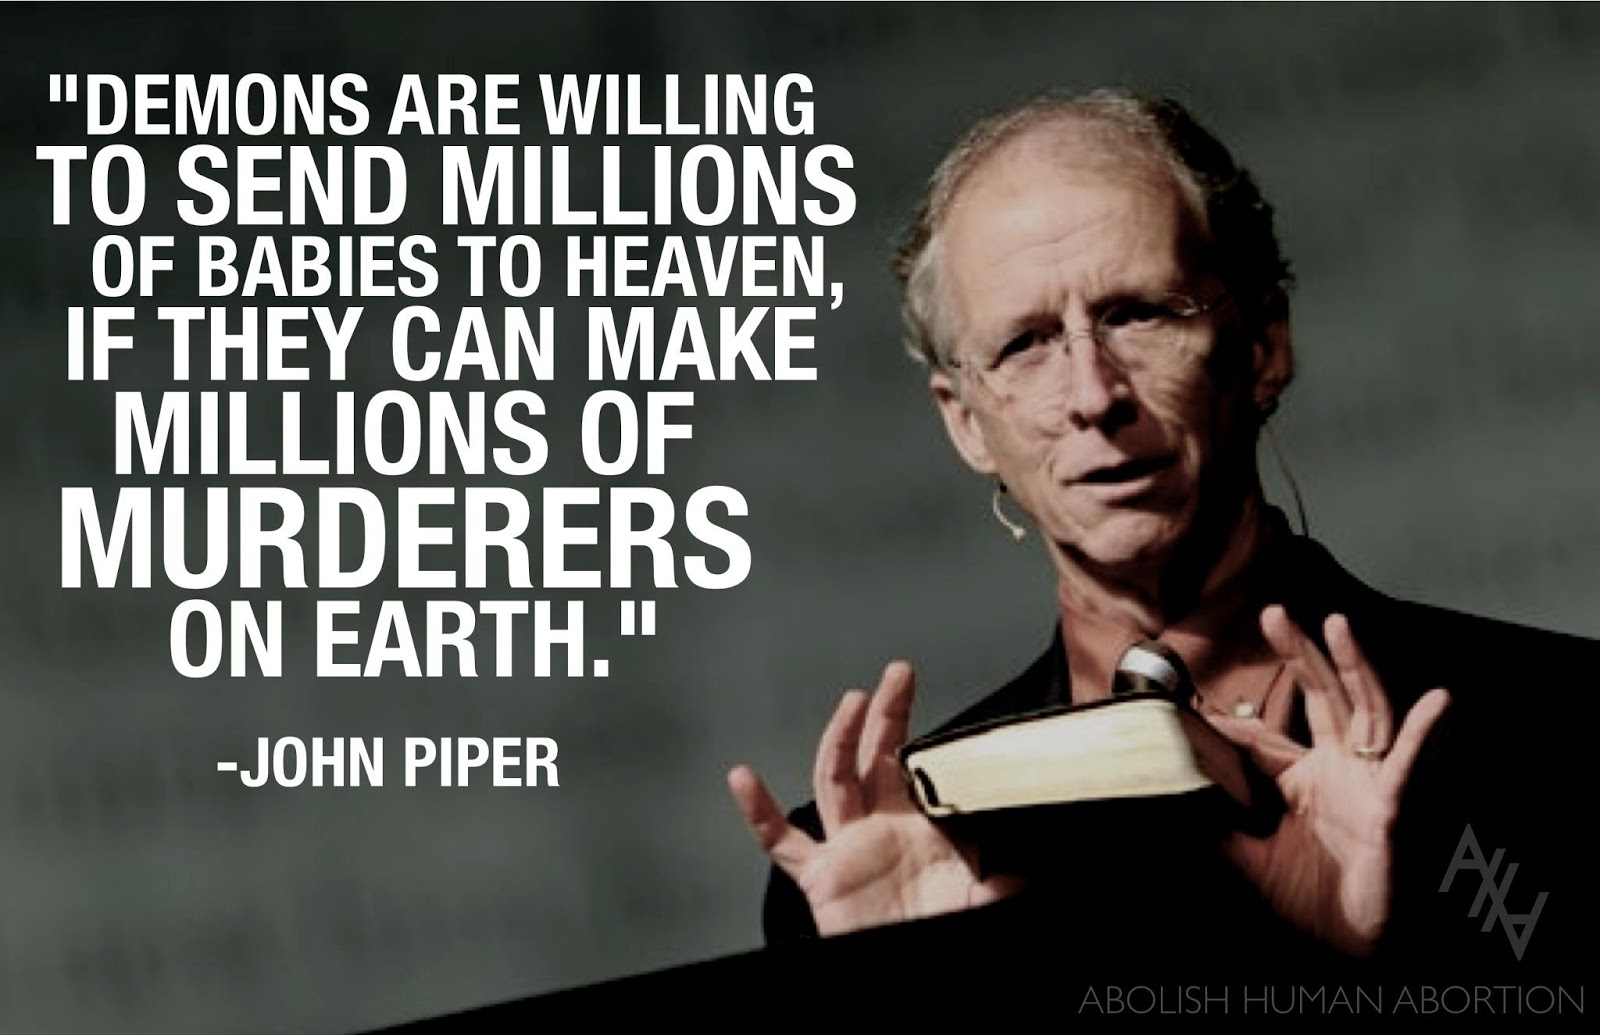 Pro Life Quotes Abwehr 1109 Soldier Executioner & Pro Lifer John Piper On